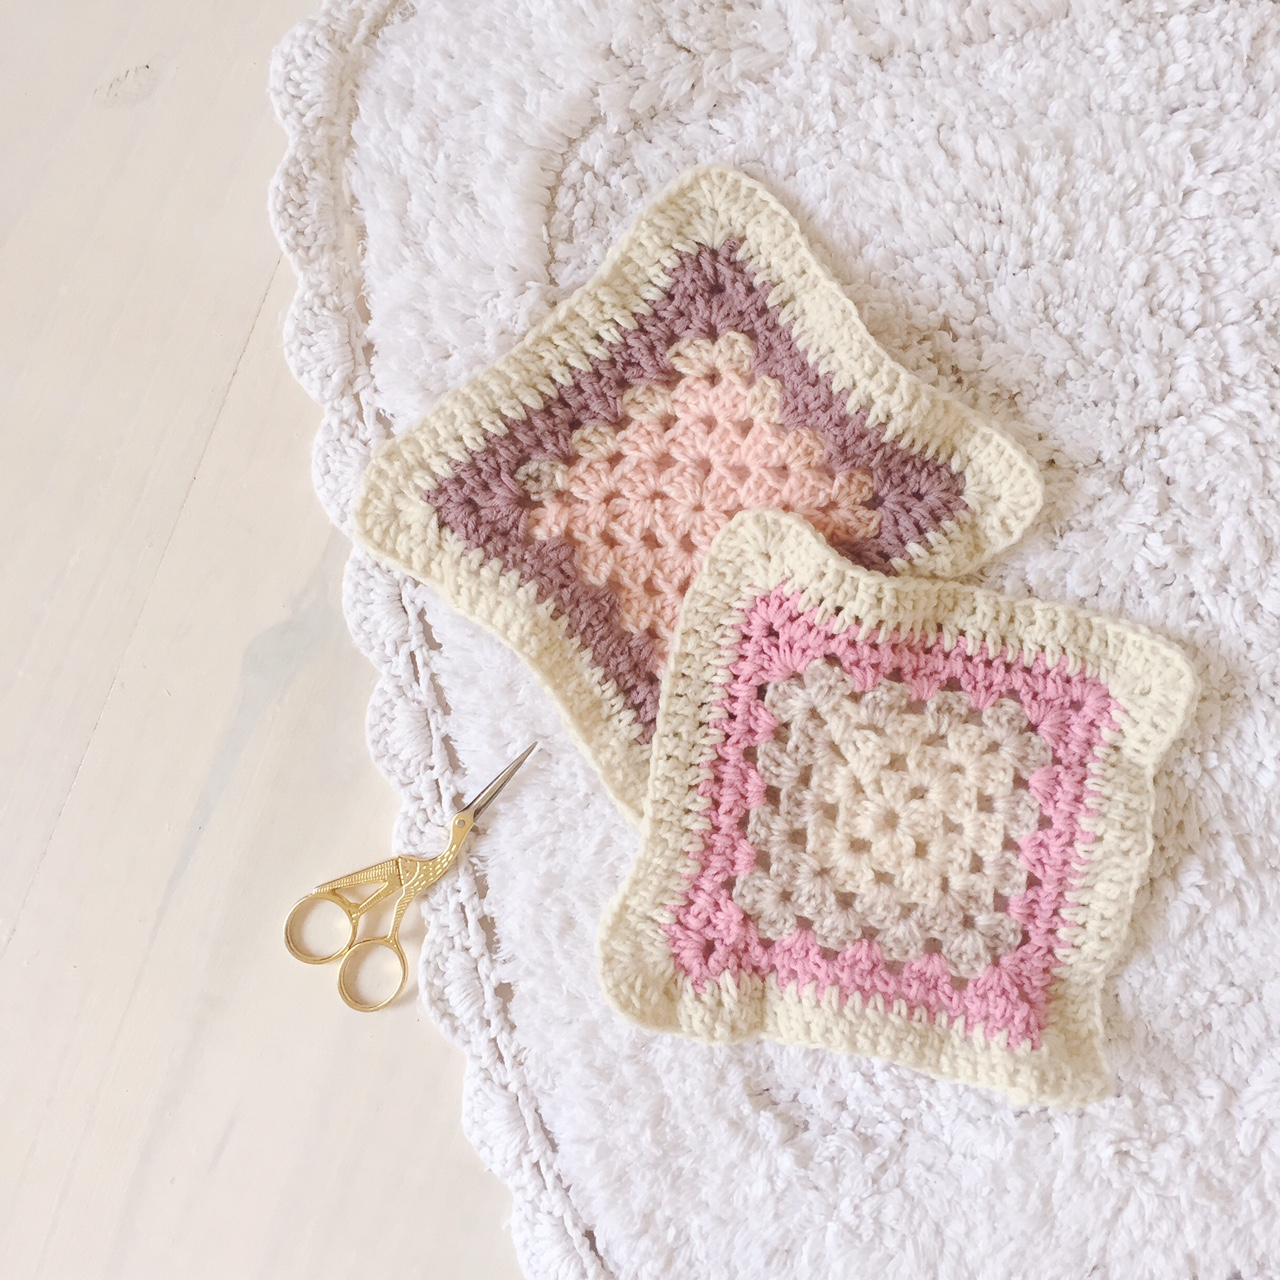 Craft Project - Crochet baby blanket